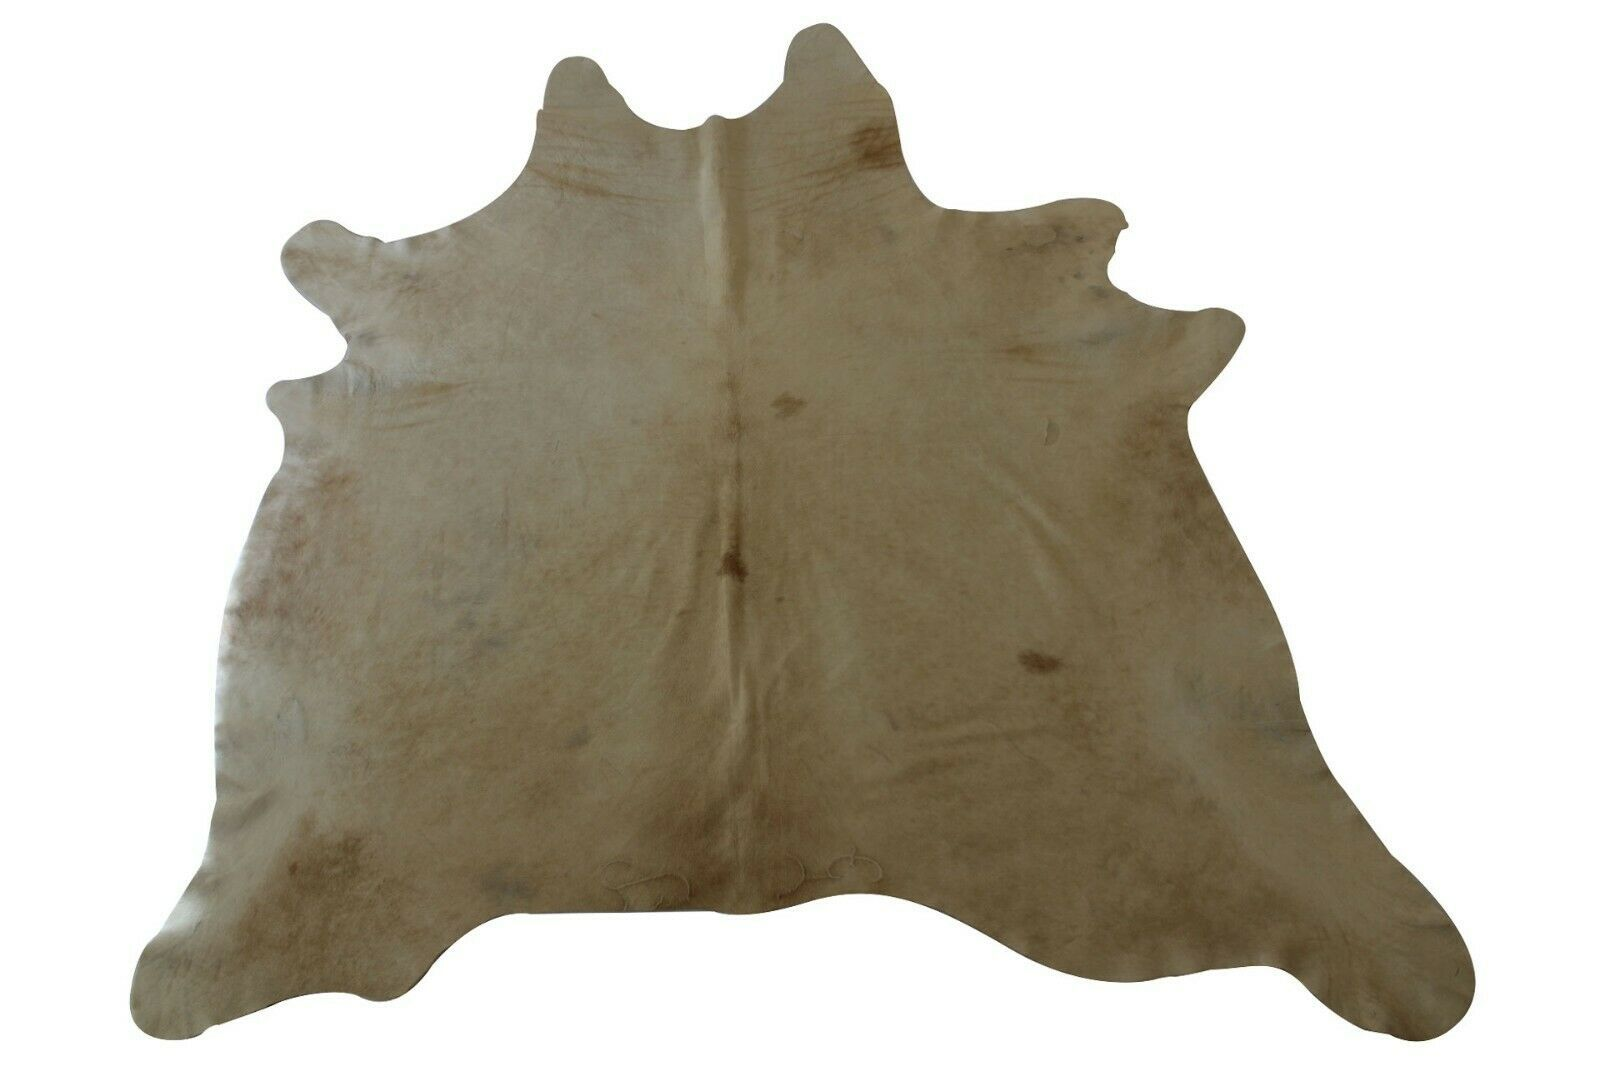 Details About Real Cowhide Rug Beige White Large 6x7 Ft Cow Skin